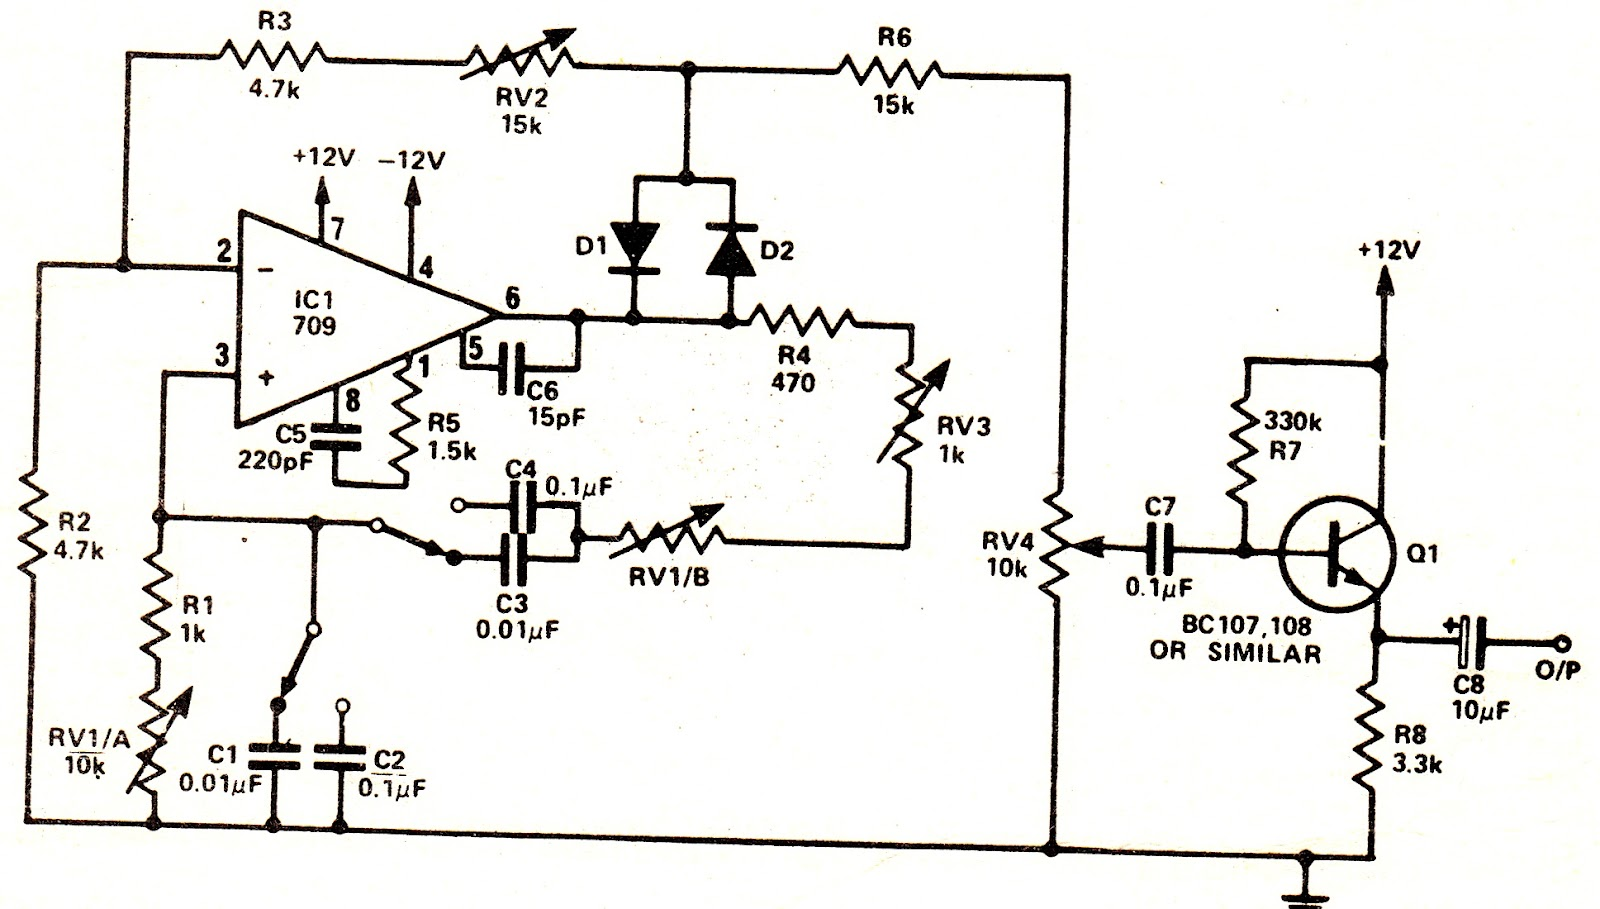 Power Acoustik Wiring Diagram 29 Images Pd 710 Wire Sine Wave Oscillator Circuit Cerwin Vega